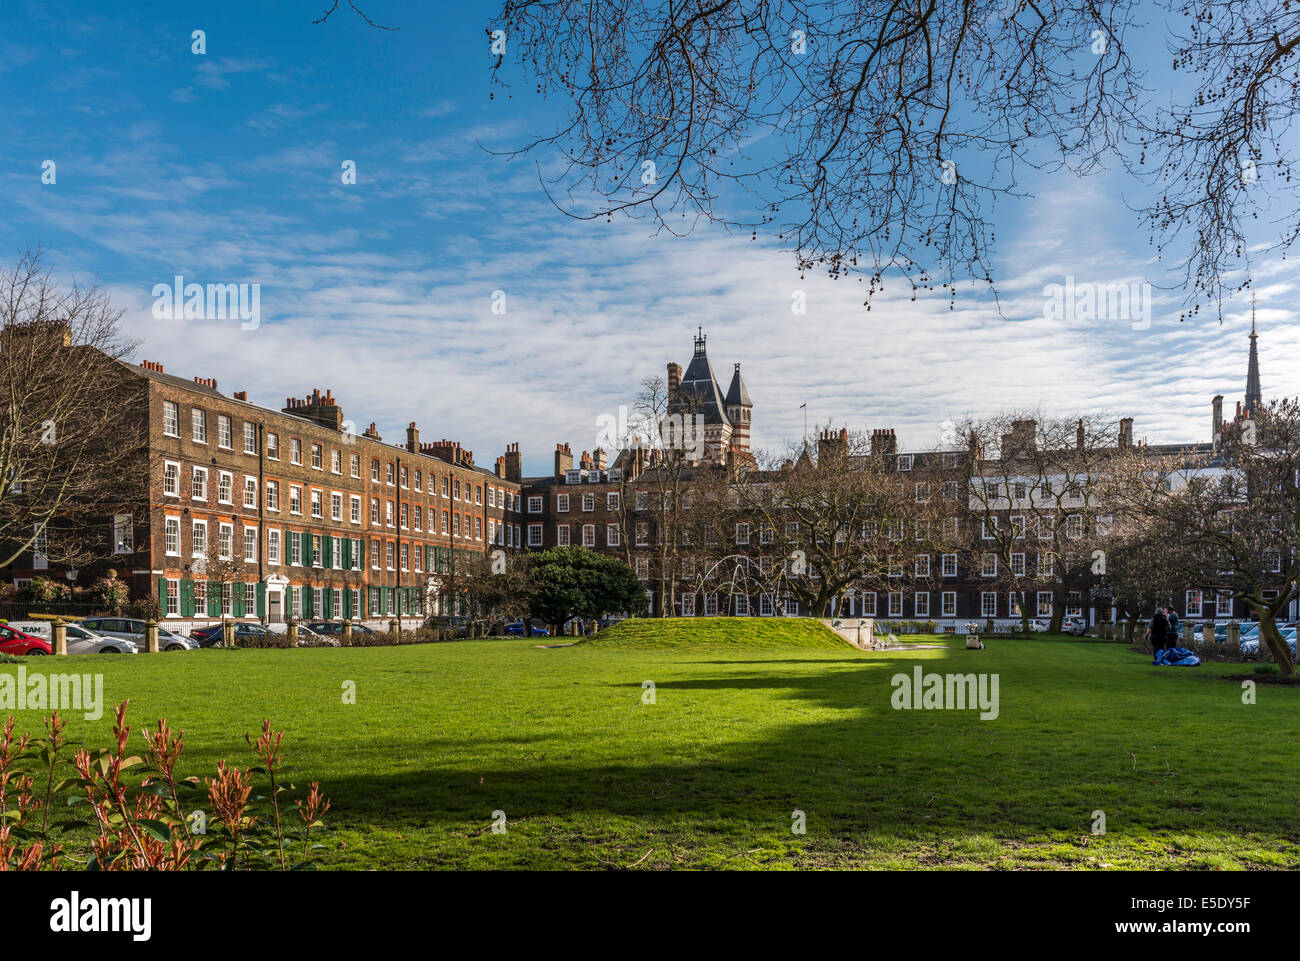 New Square lawns at Lincoln's Inn. The Honourable Society of Lincoln's Inn is one of four Inns of Court - Stock Image